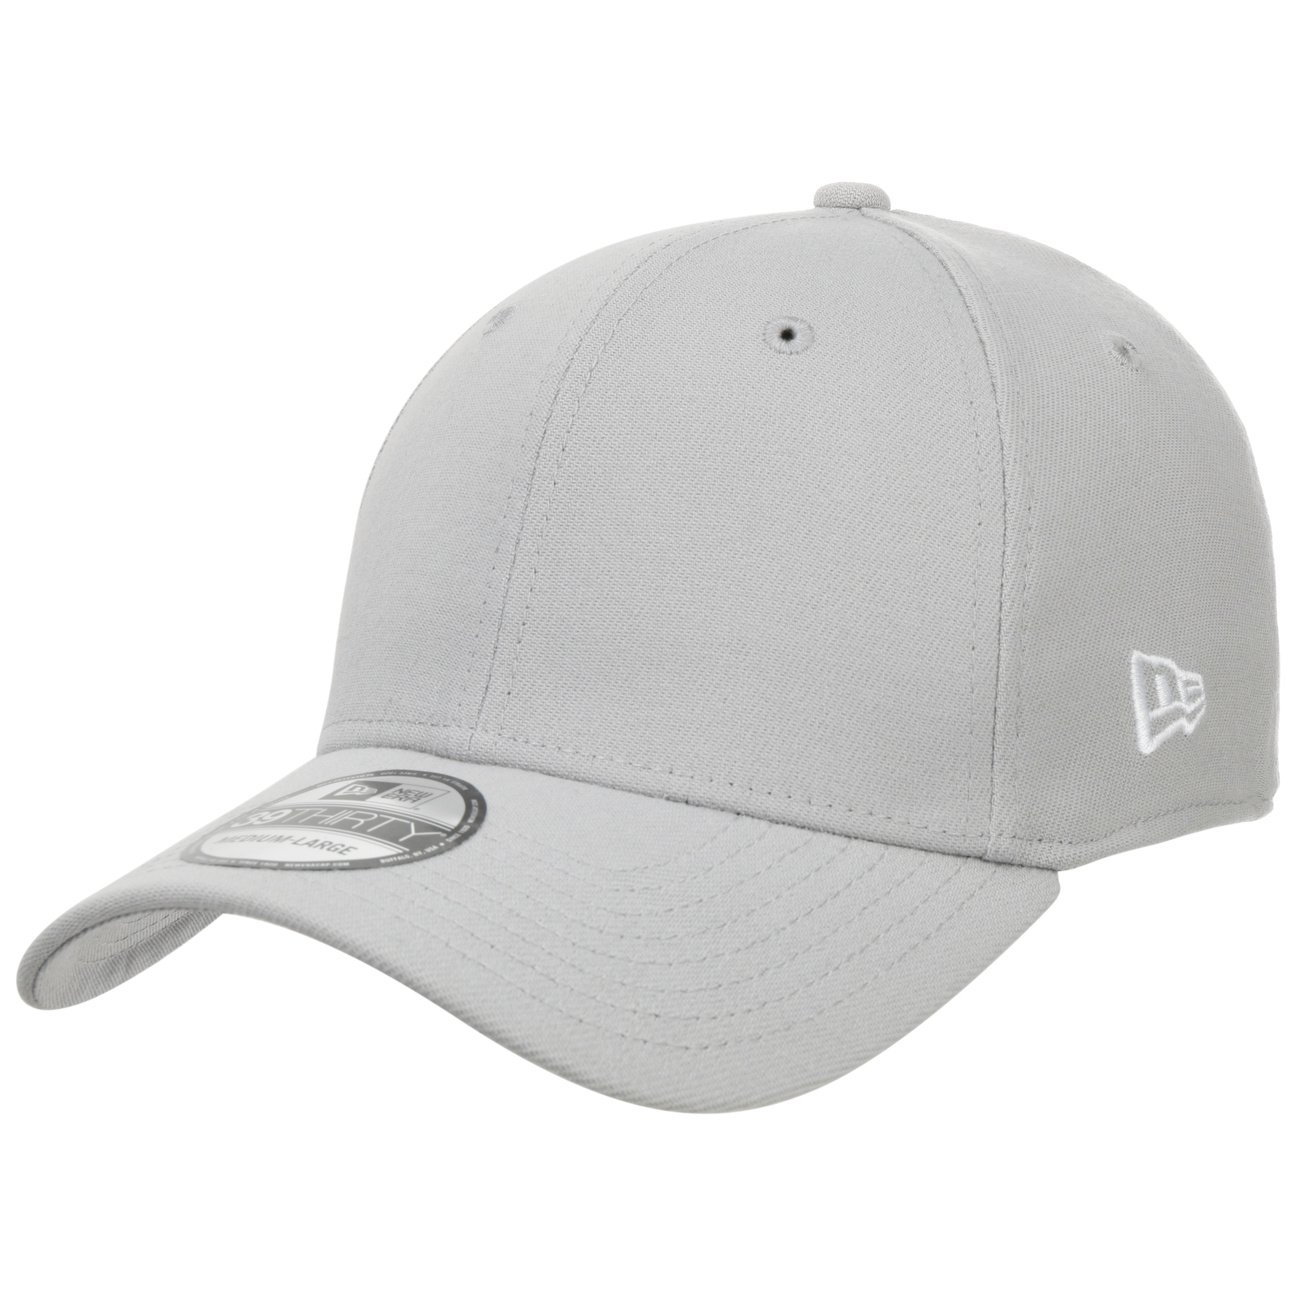 cdfc9137331 ... 39Thirty Blank Baseball Cap by New Era - grey 5 ...